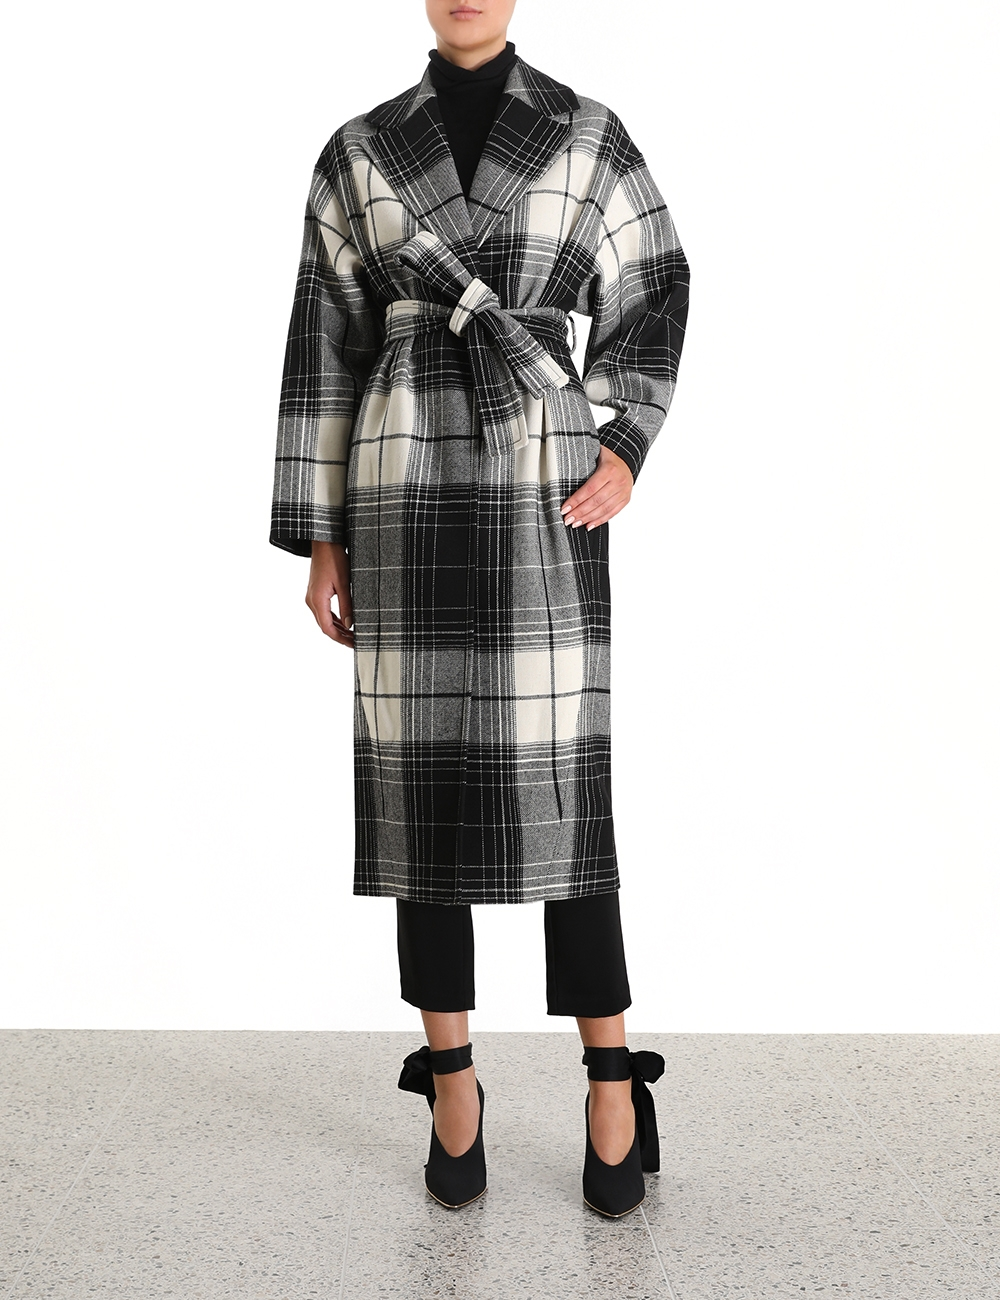 Espionage Barrel Coat